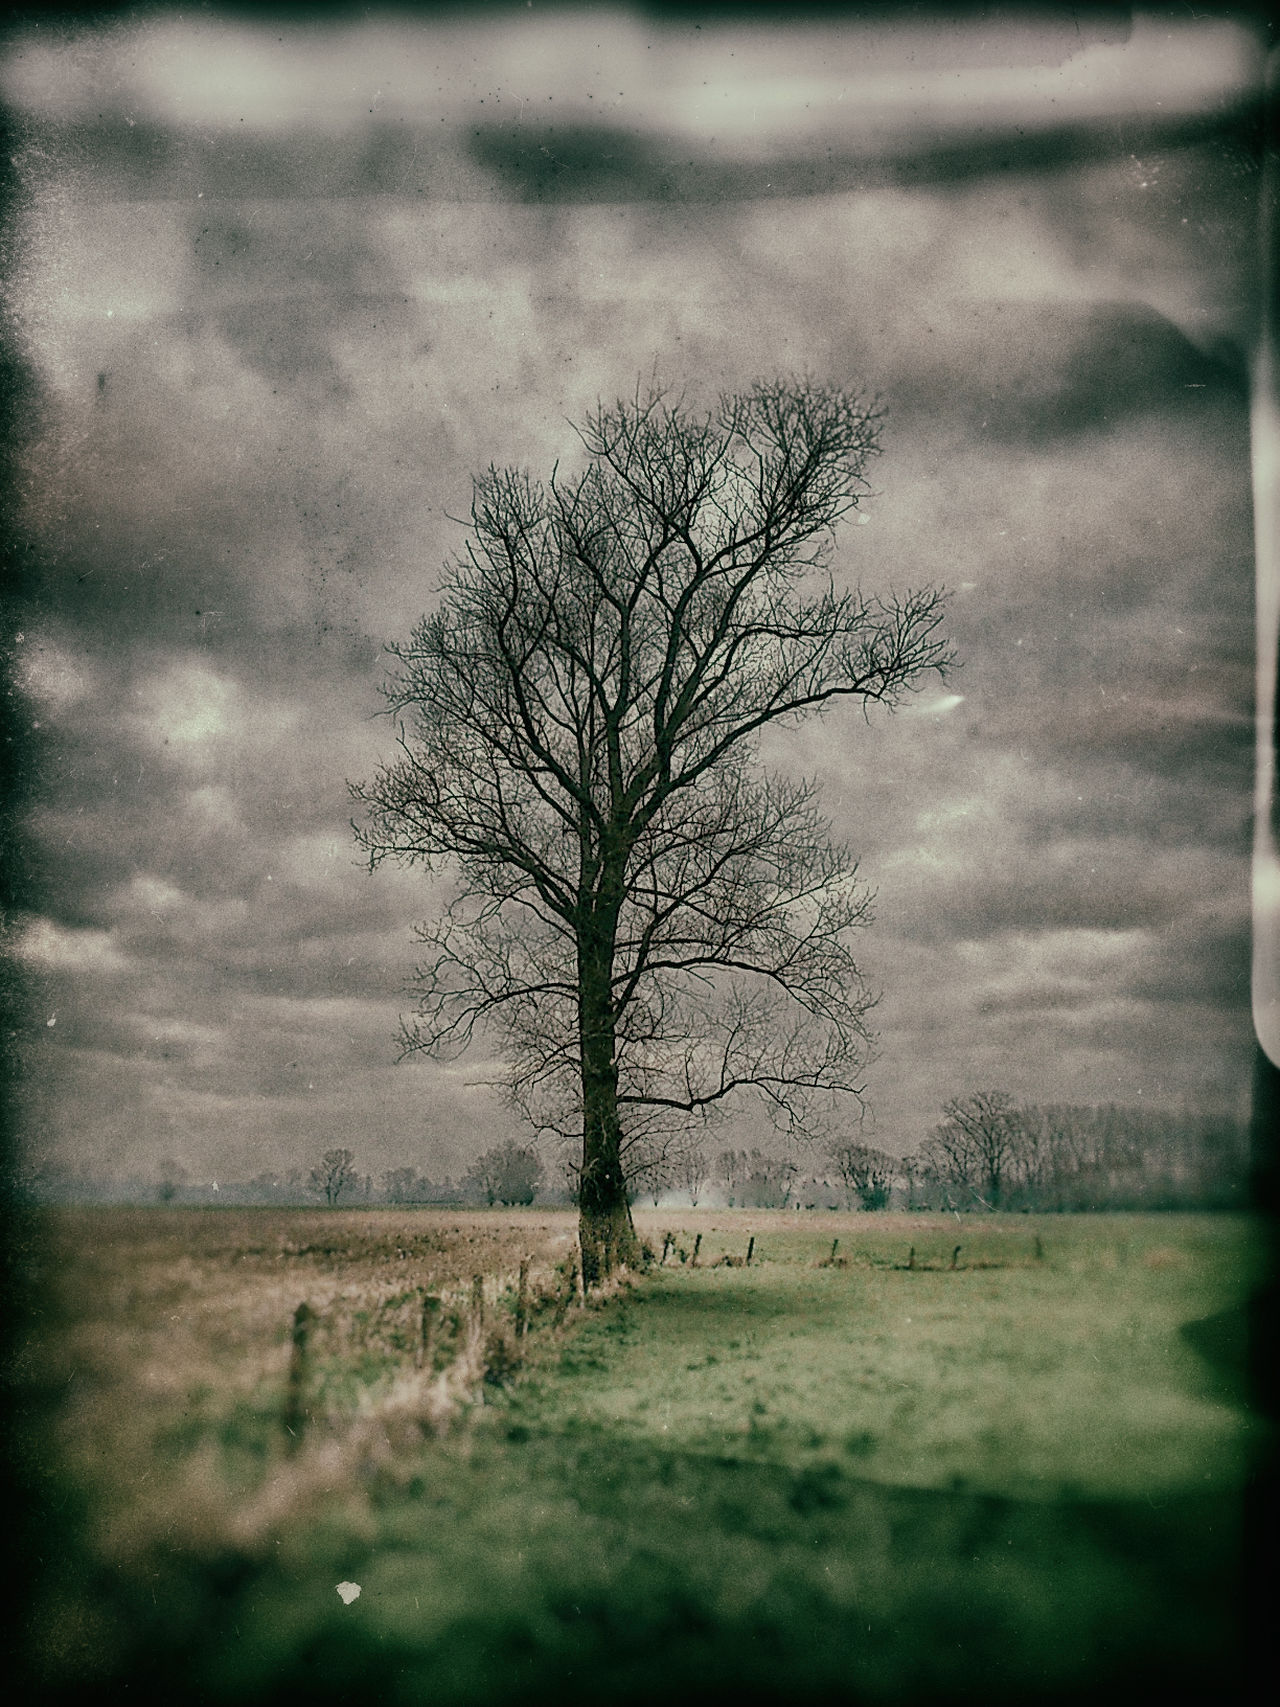 Bare Tree Beauty In Nature Being Creative Branch Day Extreme Edit EyeEm Best Edits EyeEm Best Shots EyeEm Nature Lover Field Grass Landscape Lone My Art, My Soul... My Unique Style Nature No People Outdoors Popular Photos Sky Sony ILCA-68K Taking Photos Tranquil Scene Tranquility Tree